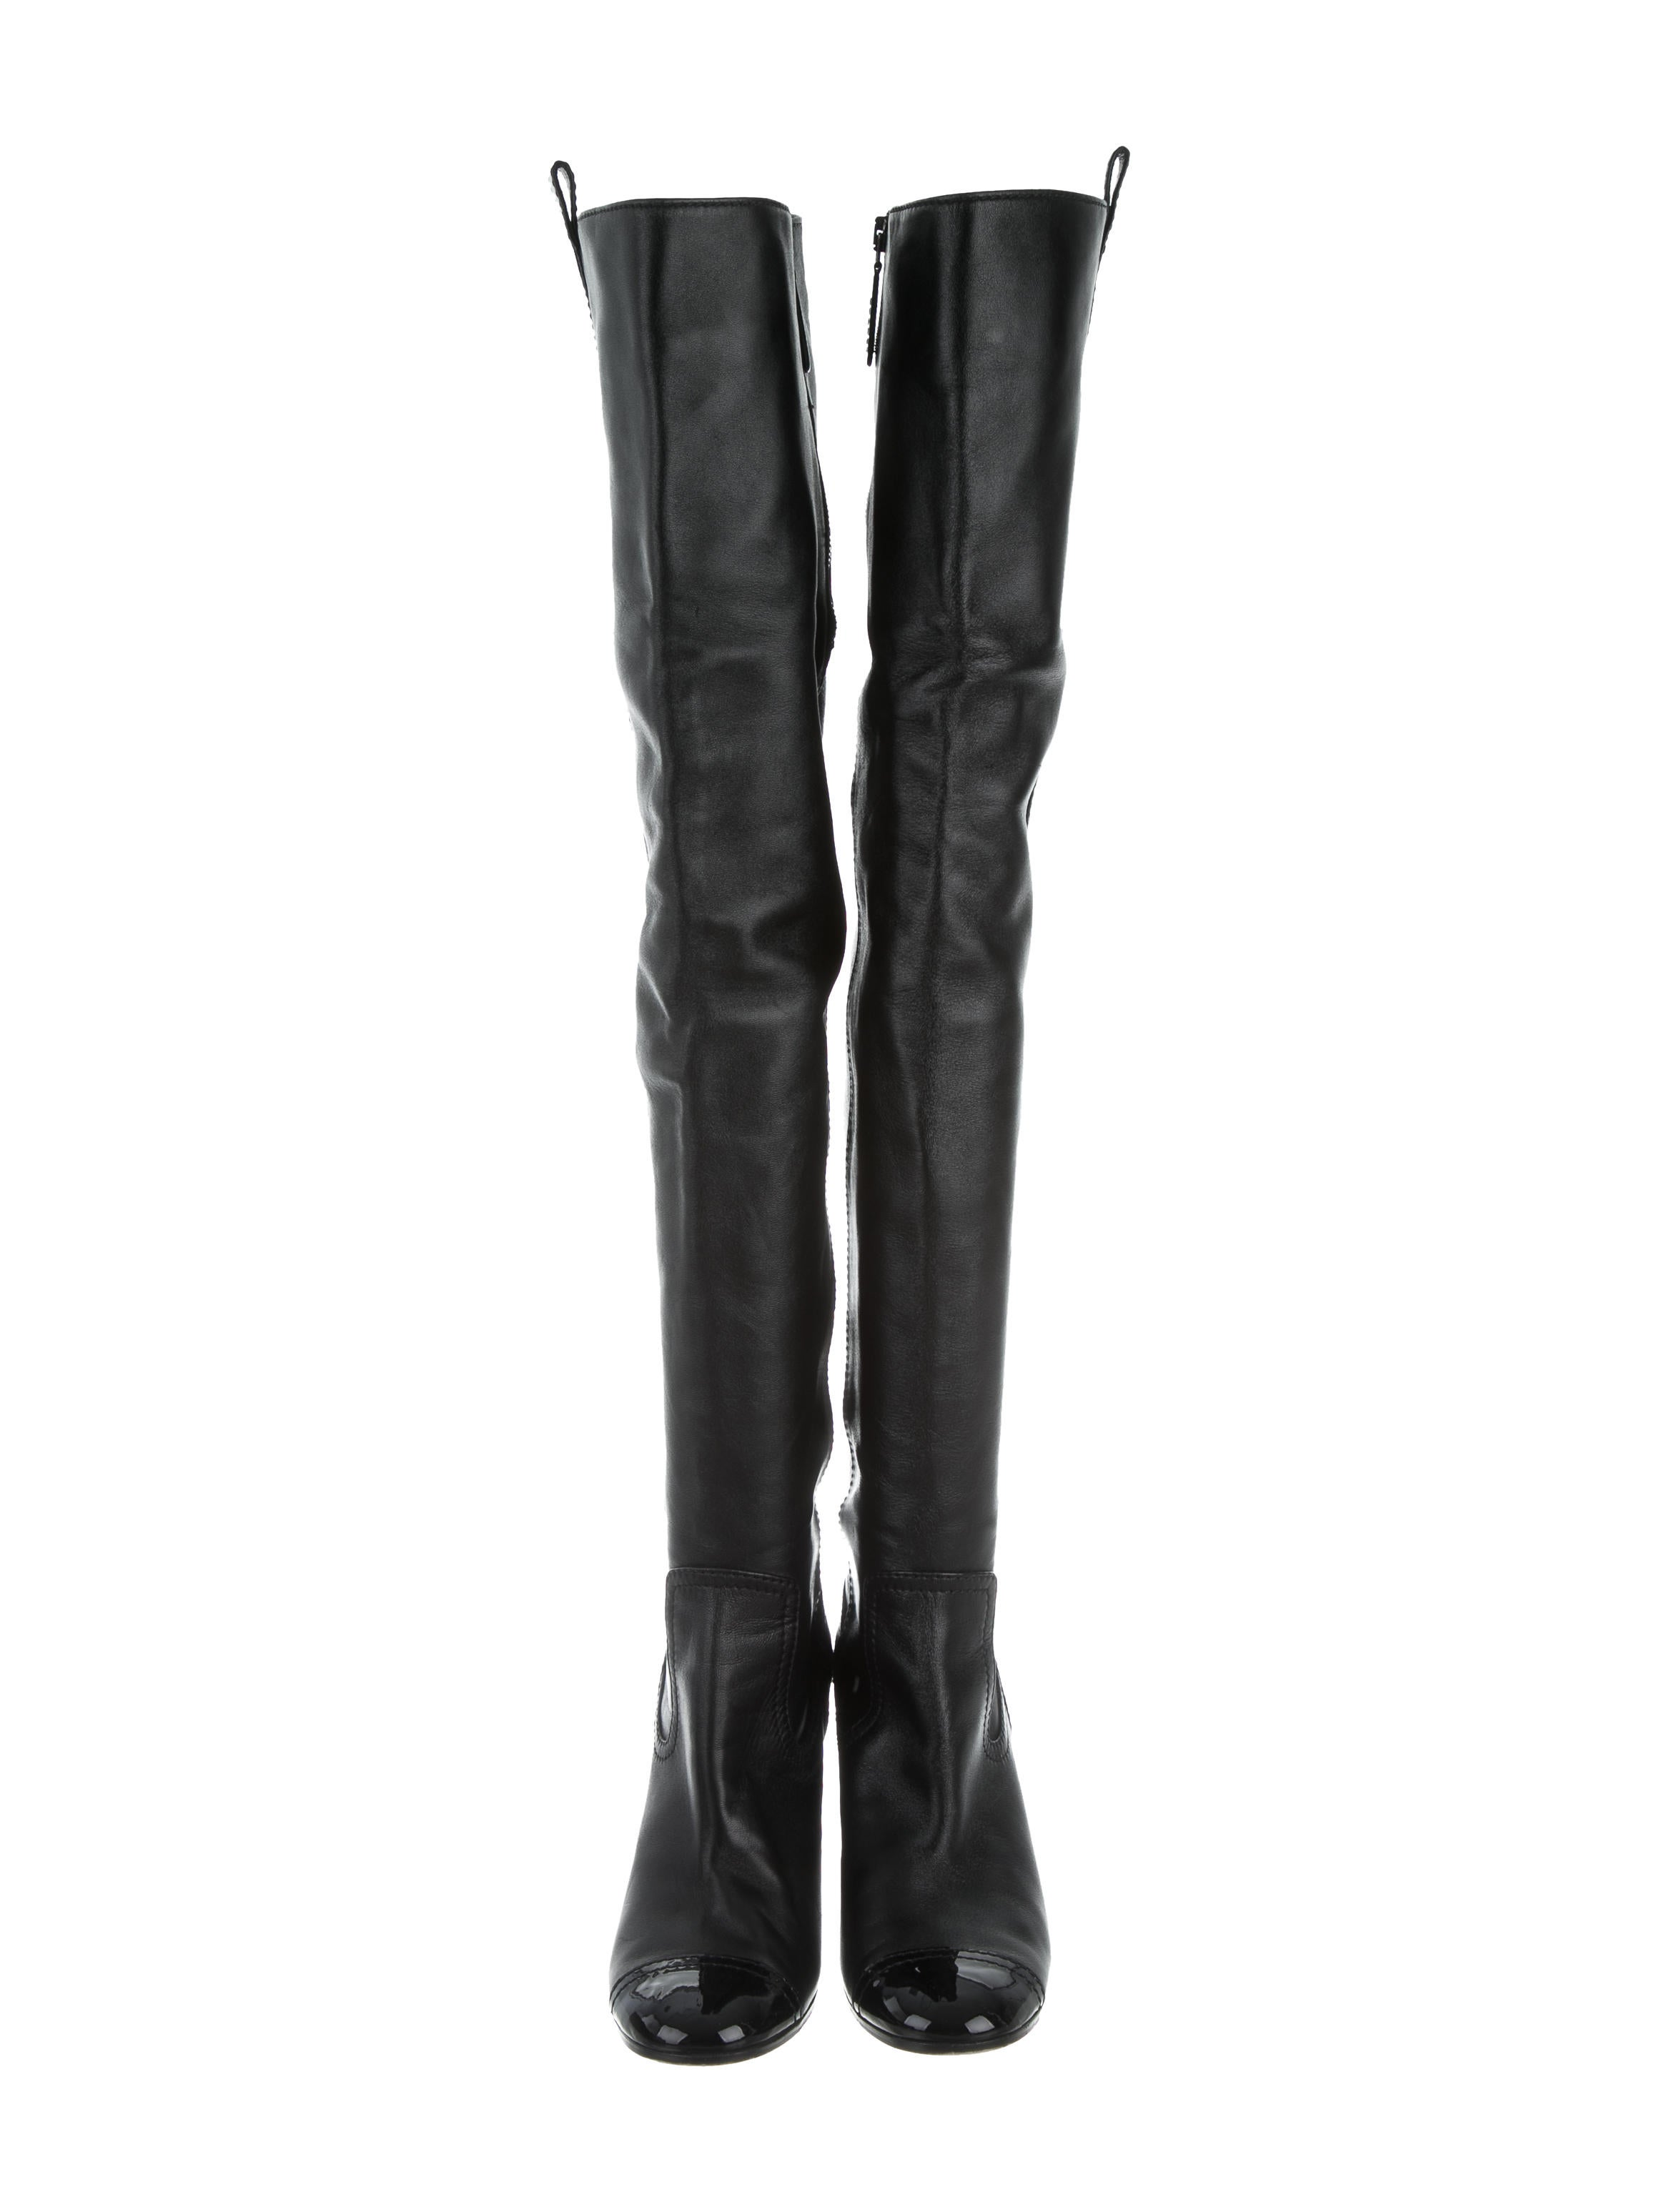 chanel cap toe thigh high boots shoes cha141439 the